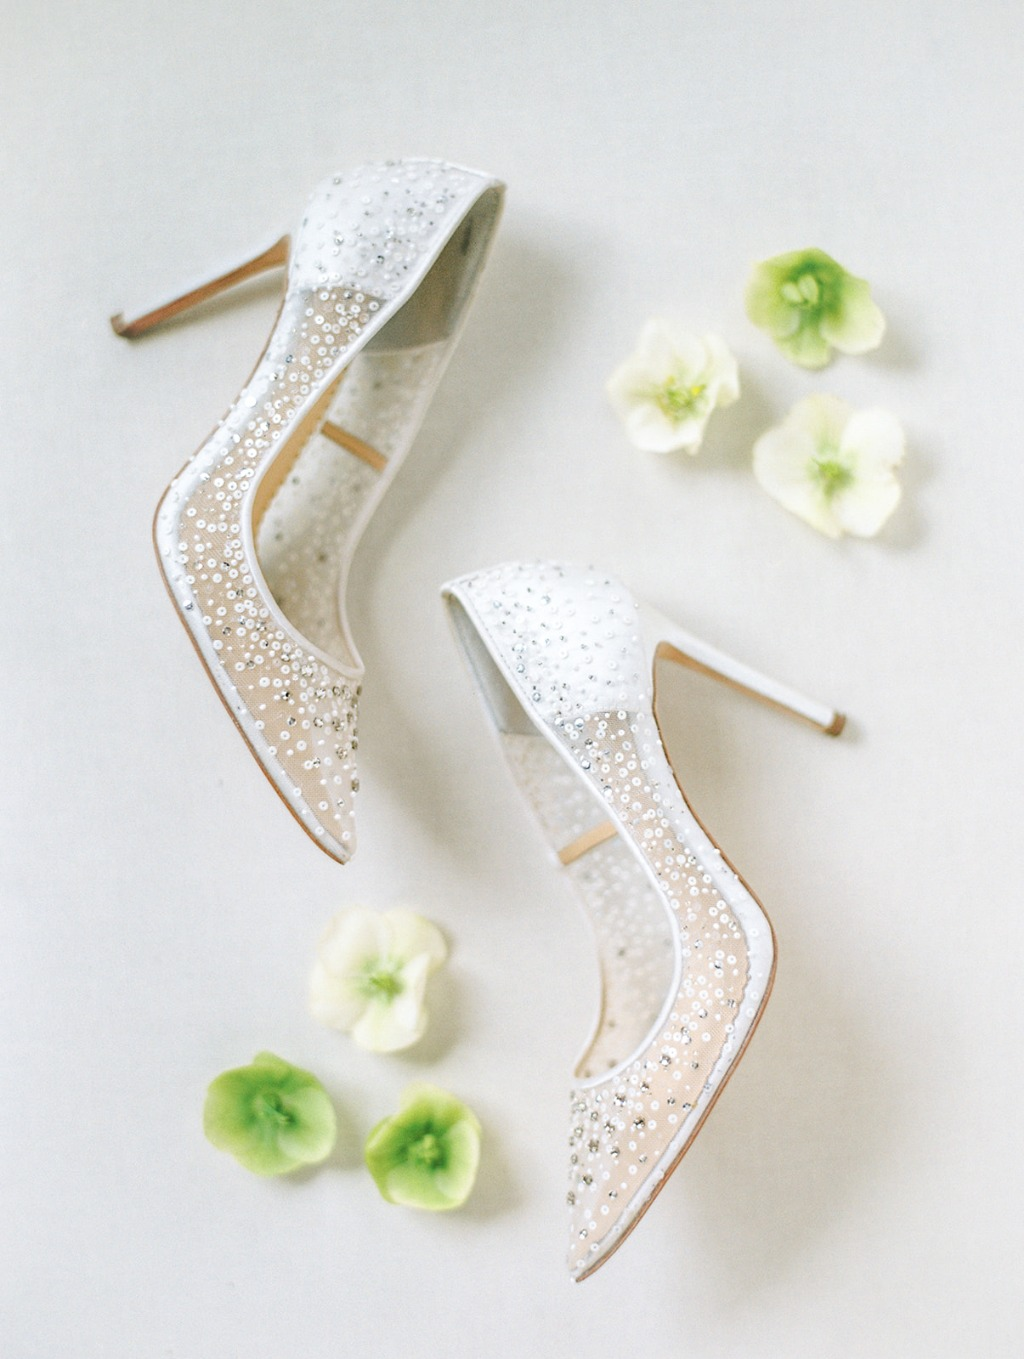 Fridays are when we add a little sparkle and dazzle to our lives, featuring @bellabelleshoes Elsa Ivory. A Cinderella Inspired glass